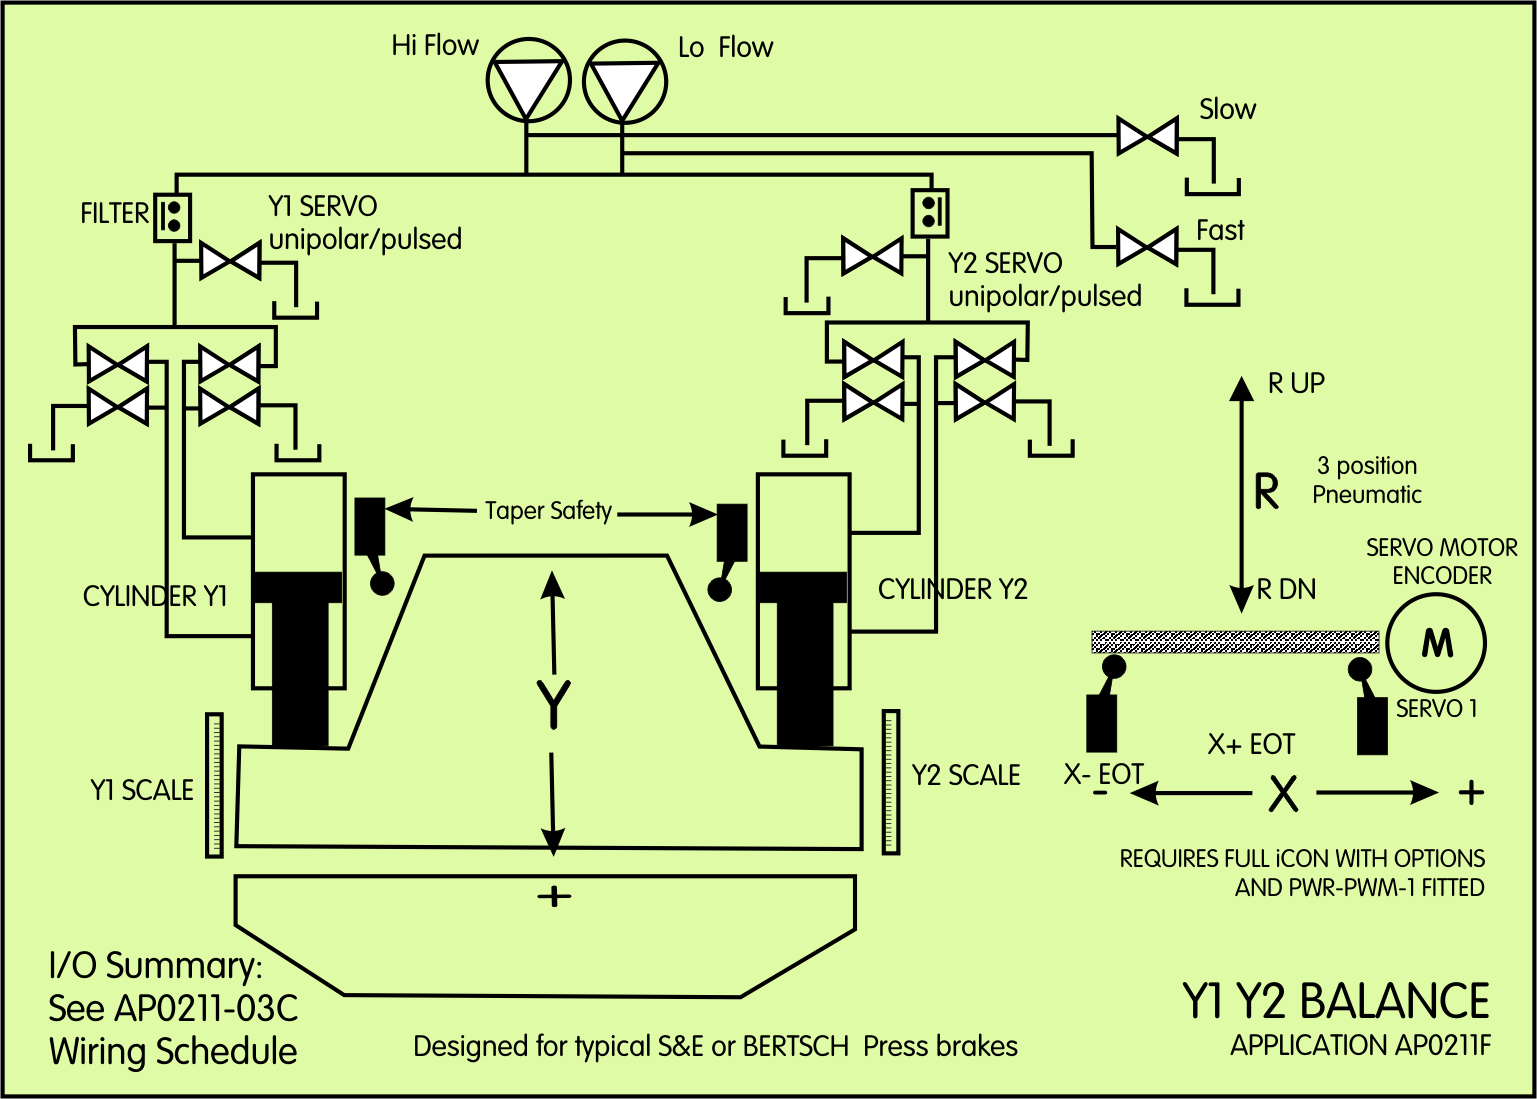 Hydraulic Press Brake Diagram How Electric Trailer Brakes Work Wiring Apps Air Ap0211 Balanced